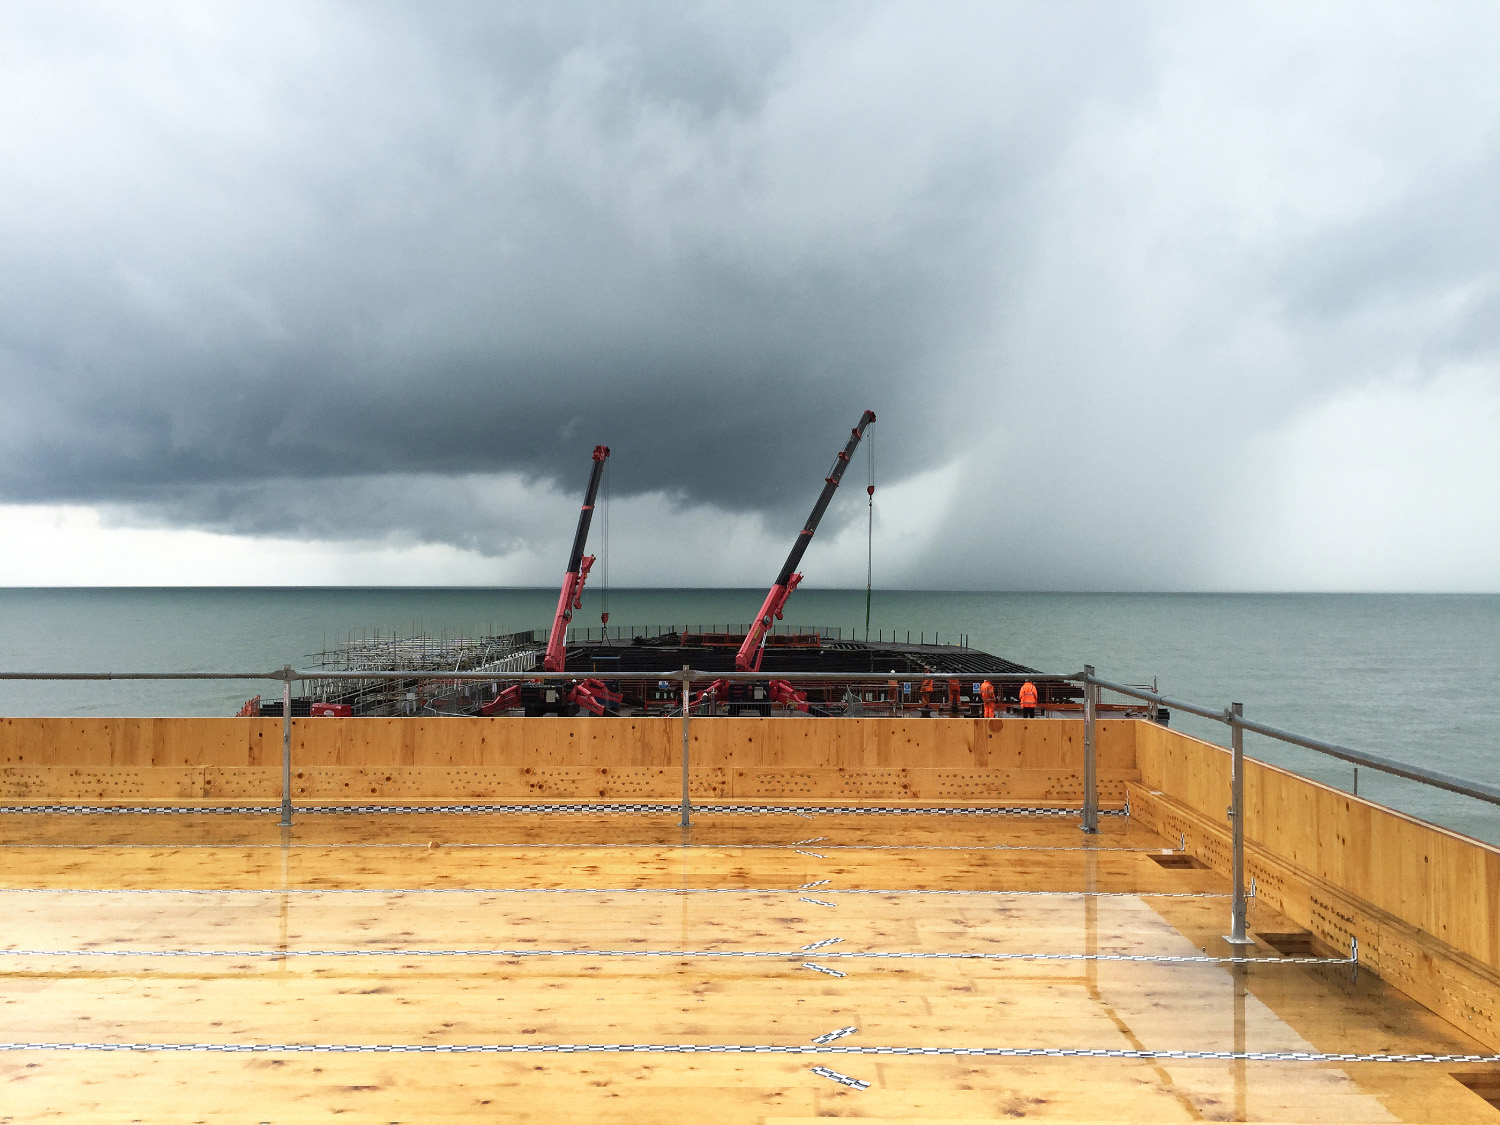 Hastings Pier under construction with barge